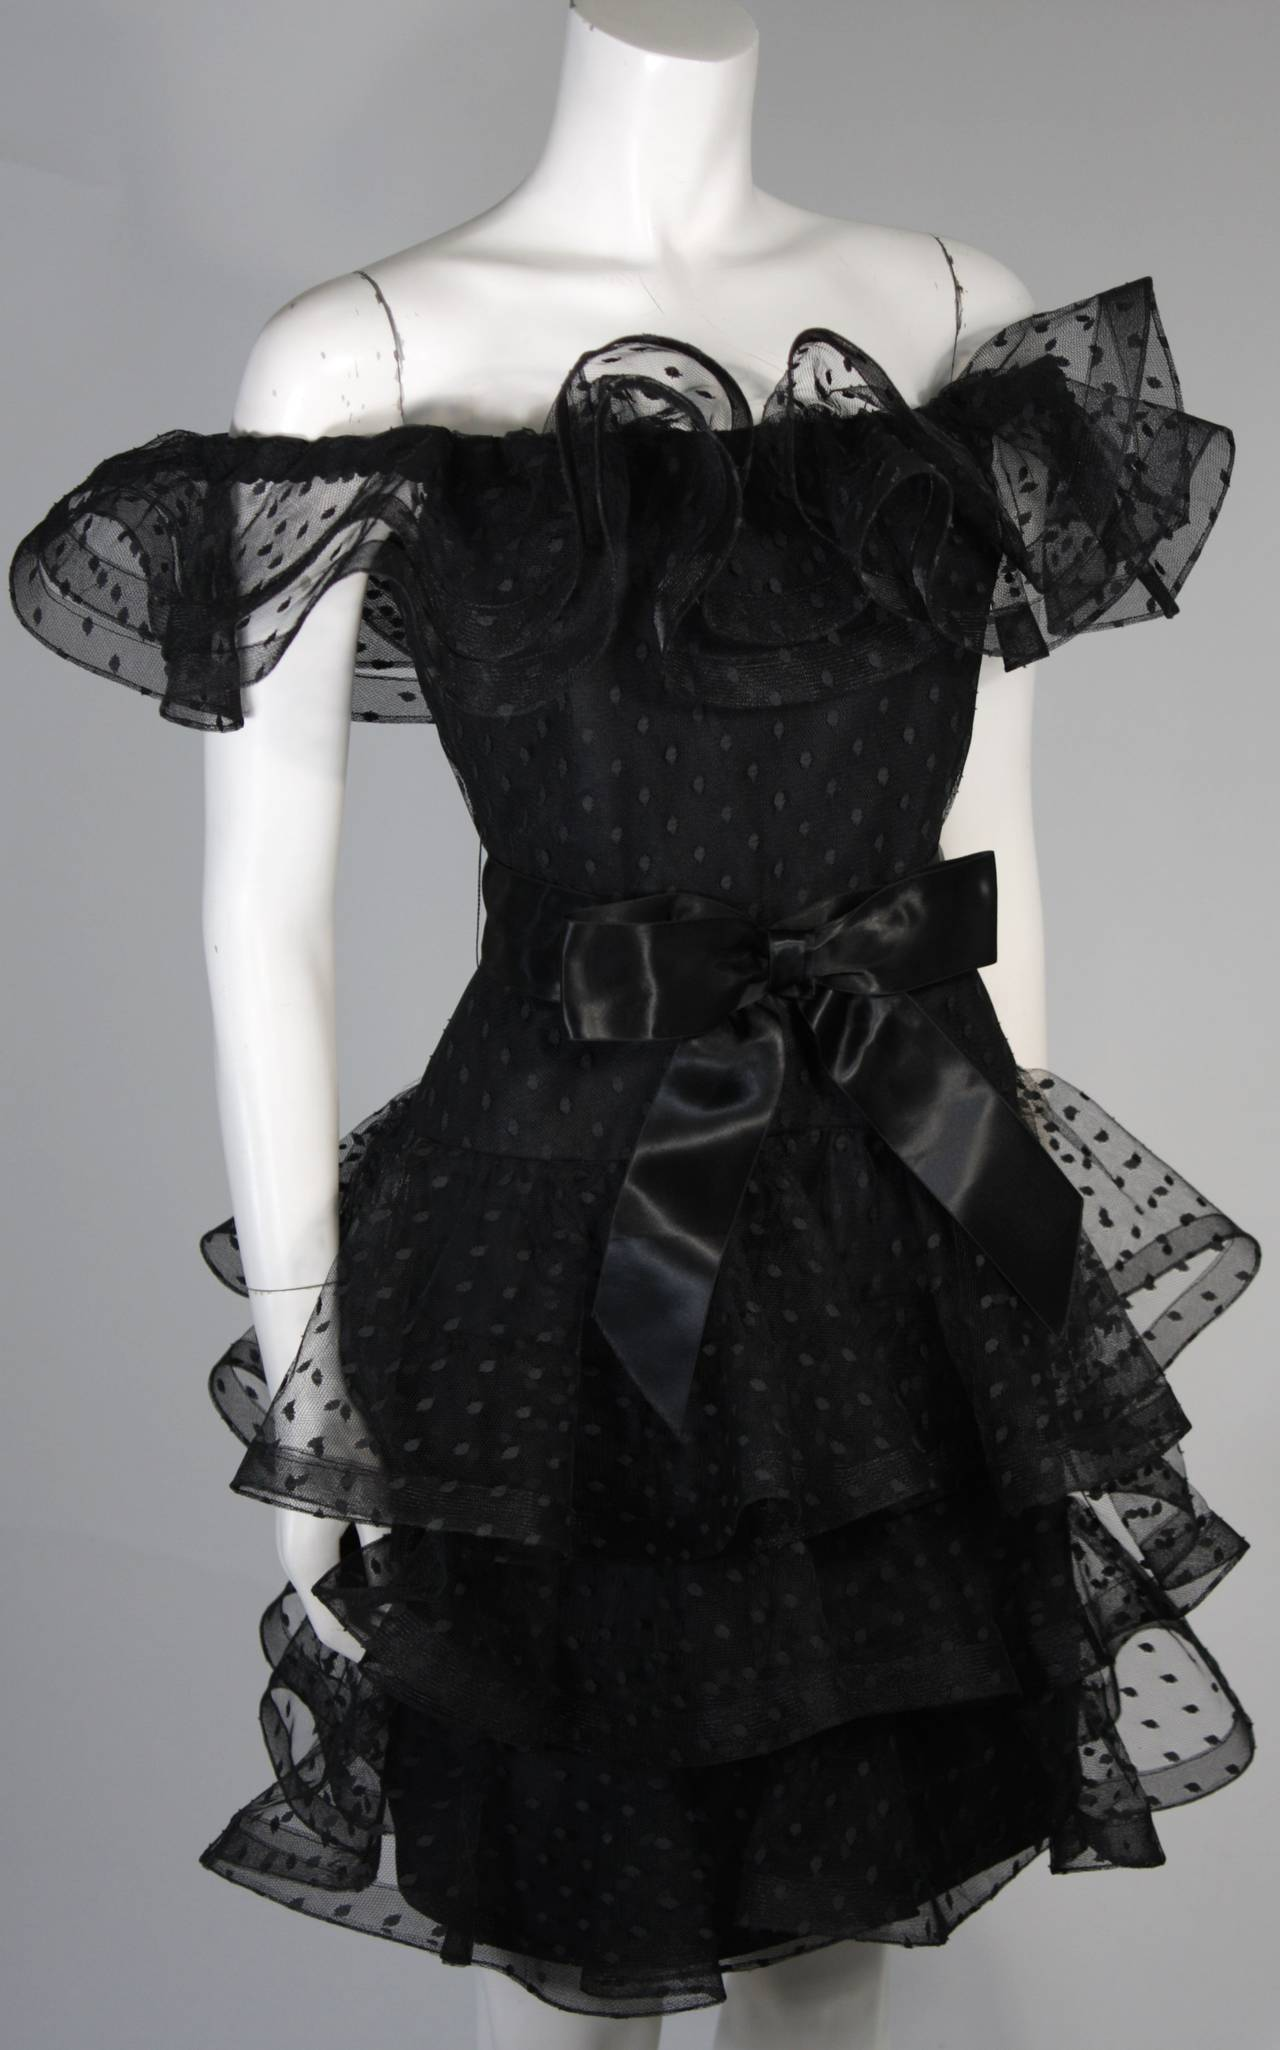 Victor Costa Black Cocktail Dress with Ruffled Horsehair Hemlines Size 2 5